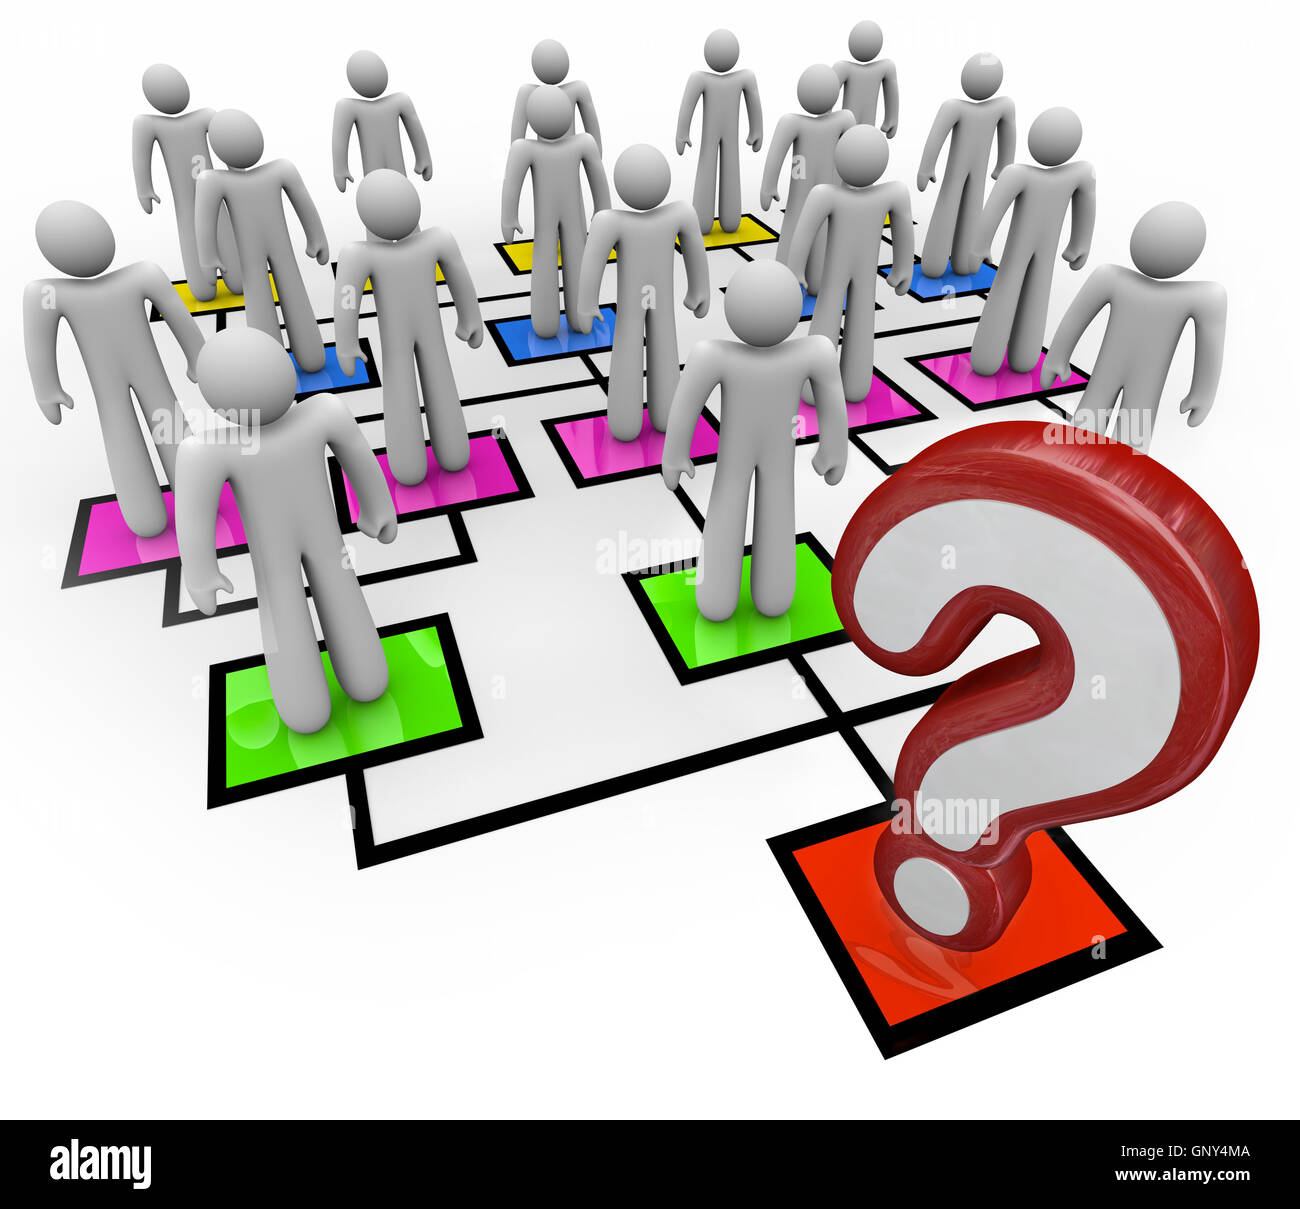 Question Mark Lack of Leadership Org Chart - Stock Image